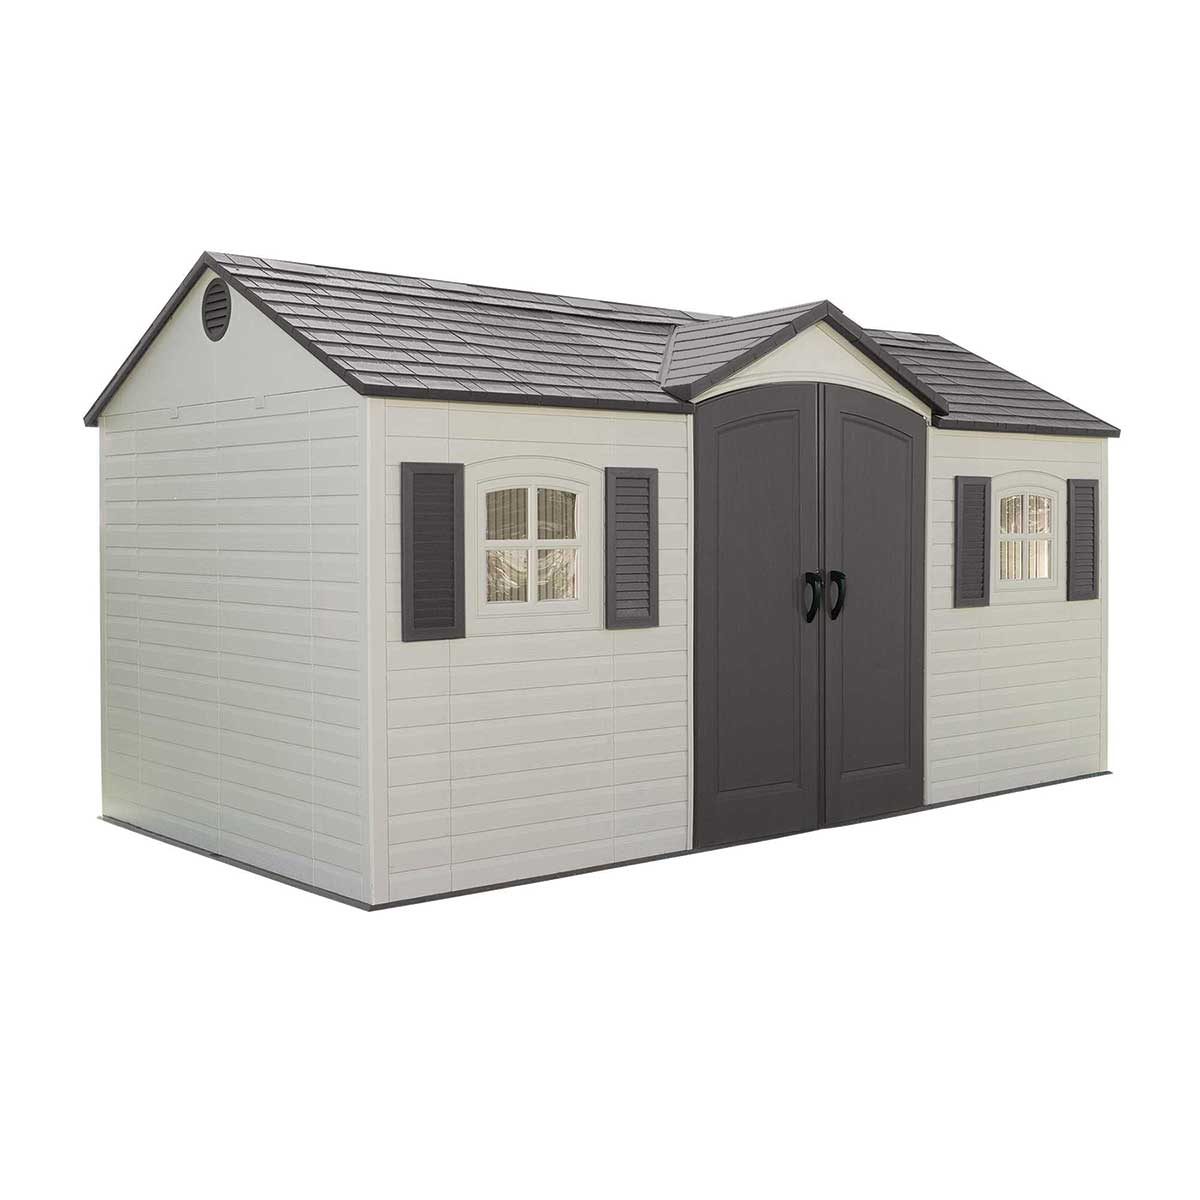 Lifetime 15 Ft. x 8 Ft. Outdoor Storage Shed